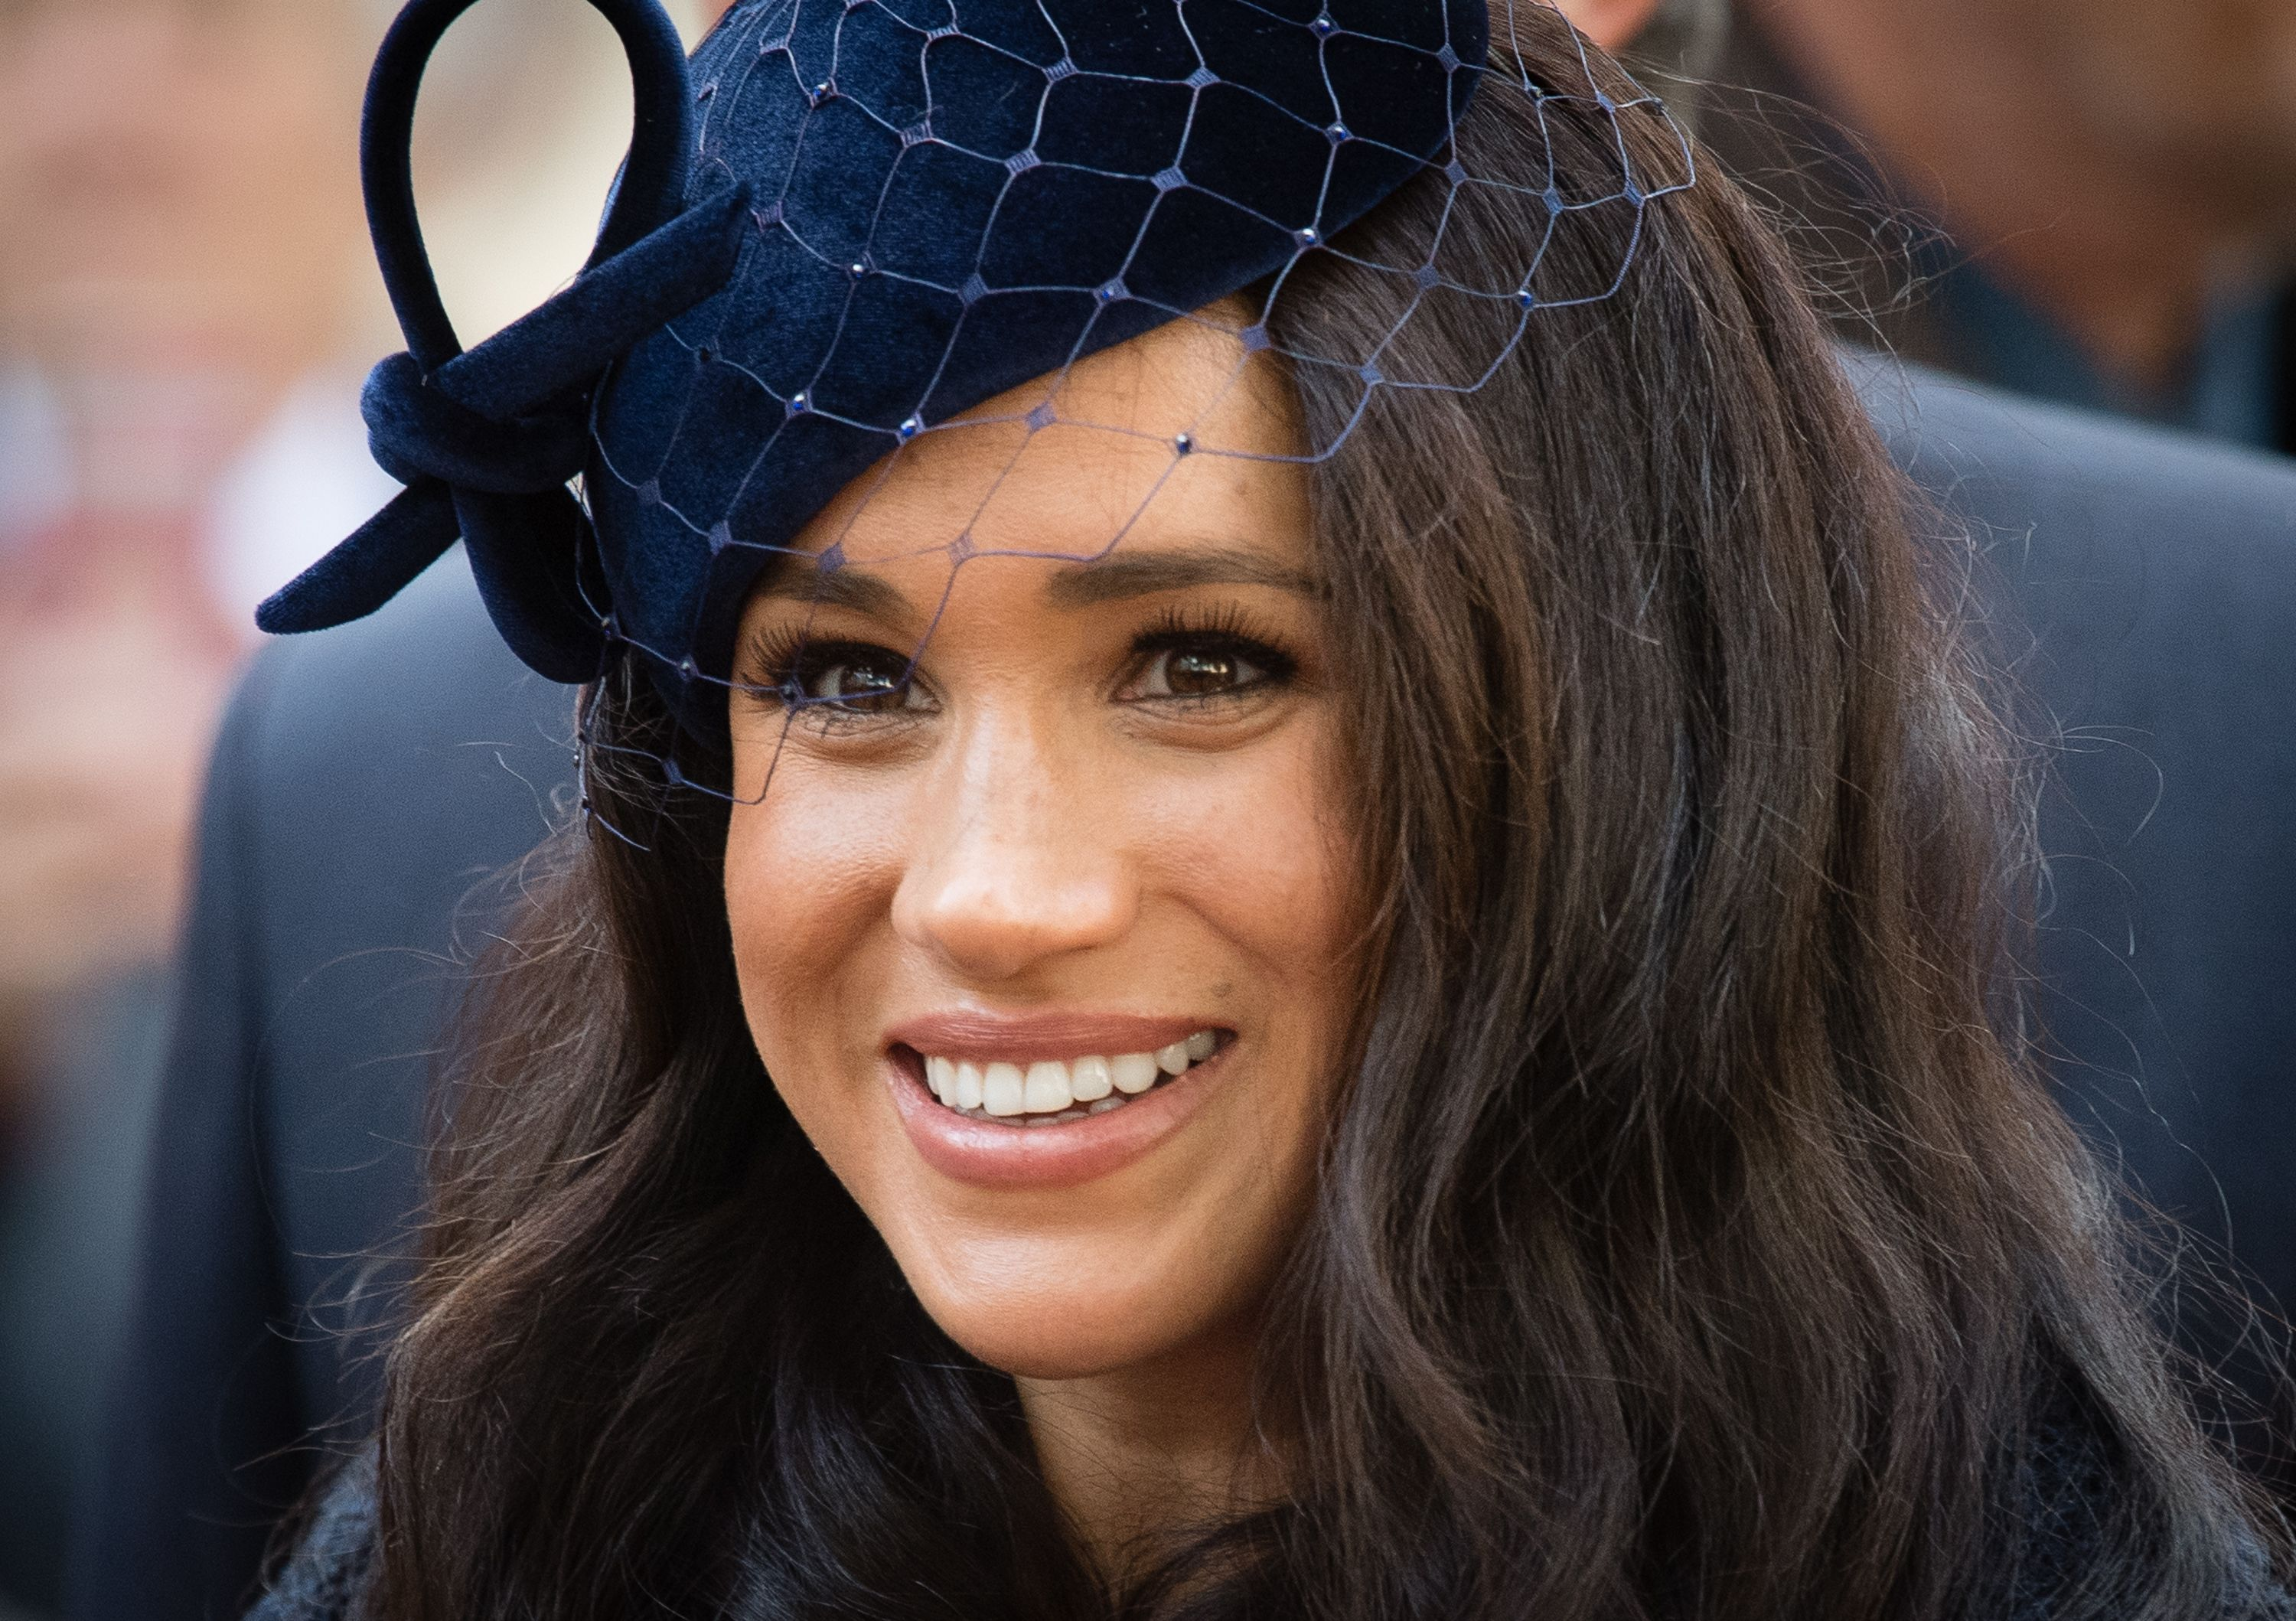 Meghan Markle Once Shared Her Tips For Hosting The 'Perfect Christmas'